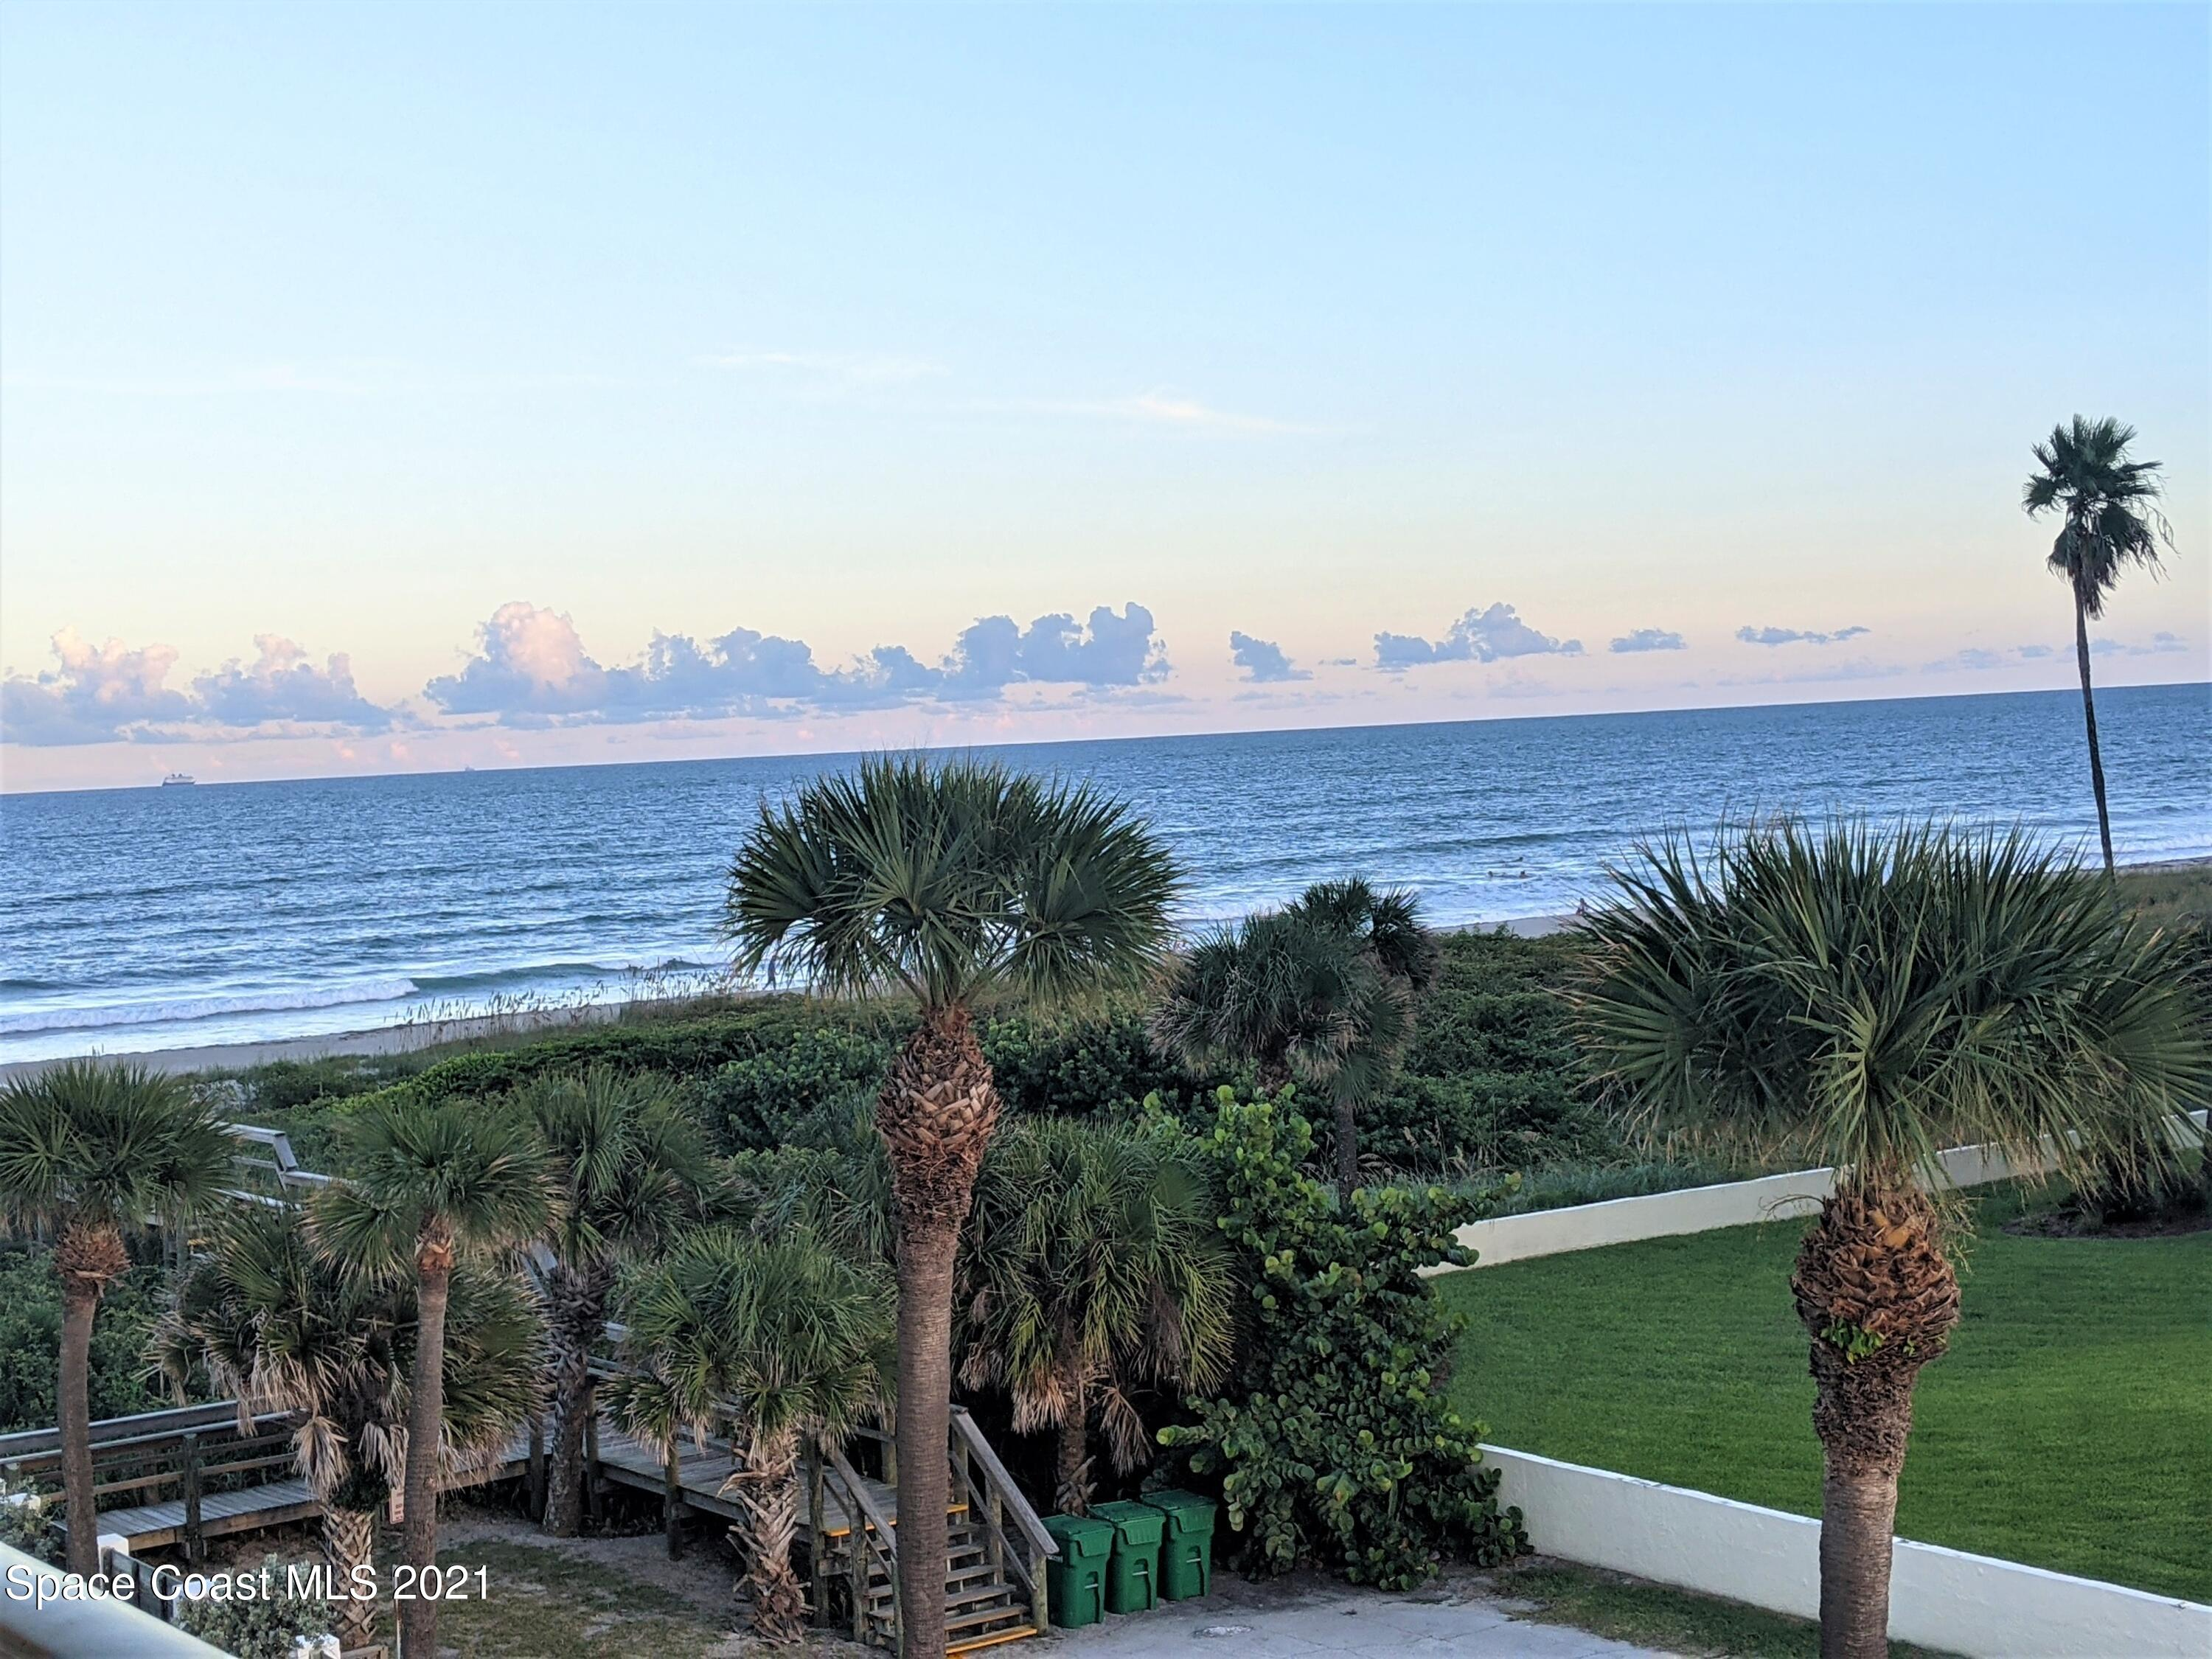 1236 sf 4th floor condo with gorgeous south/east view of the ocean. Unit has two master bedrooms with a large open great room and balcony off living room and front bedroom. Come and enjoy the beautiful heated pool, community pool area with grill and rec room before heading to the beach through the private landscaped beach gate. Great location to sit back and enjoy sunrises and sunsets on your private balcony after spending the day in Cocoa Beach.